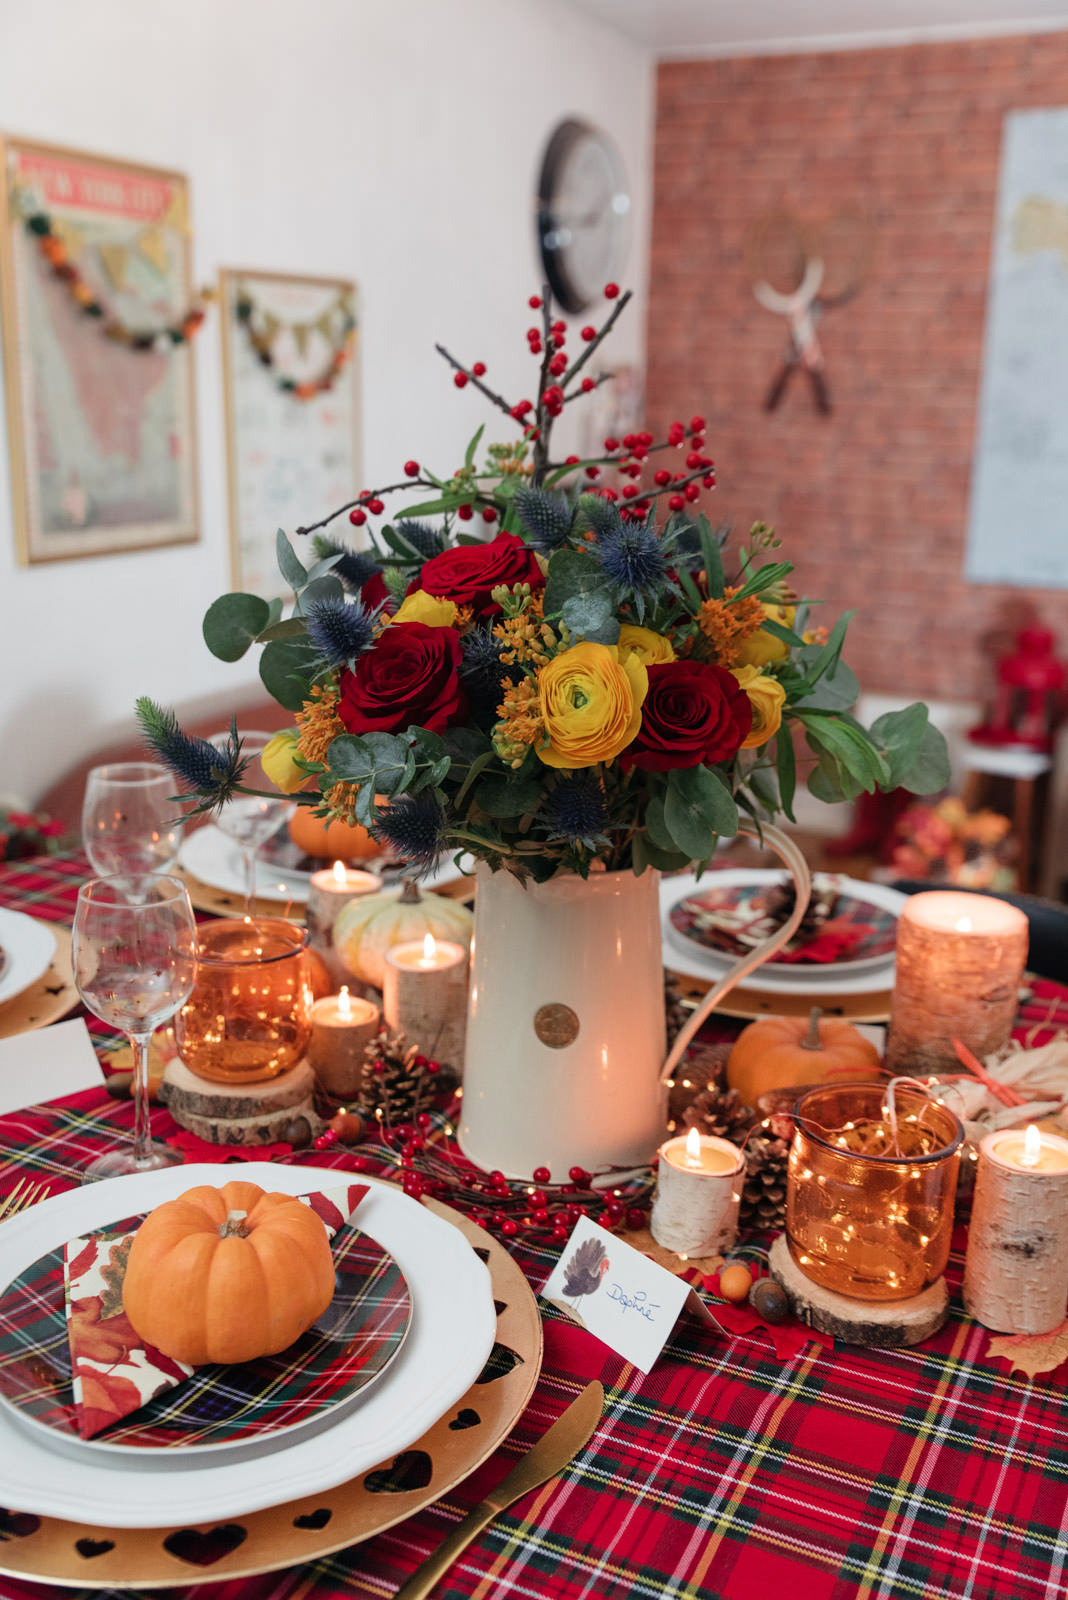 Blog-Mode-And-The-City-Lifestyle-Thanksgiving-2017-16